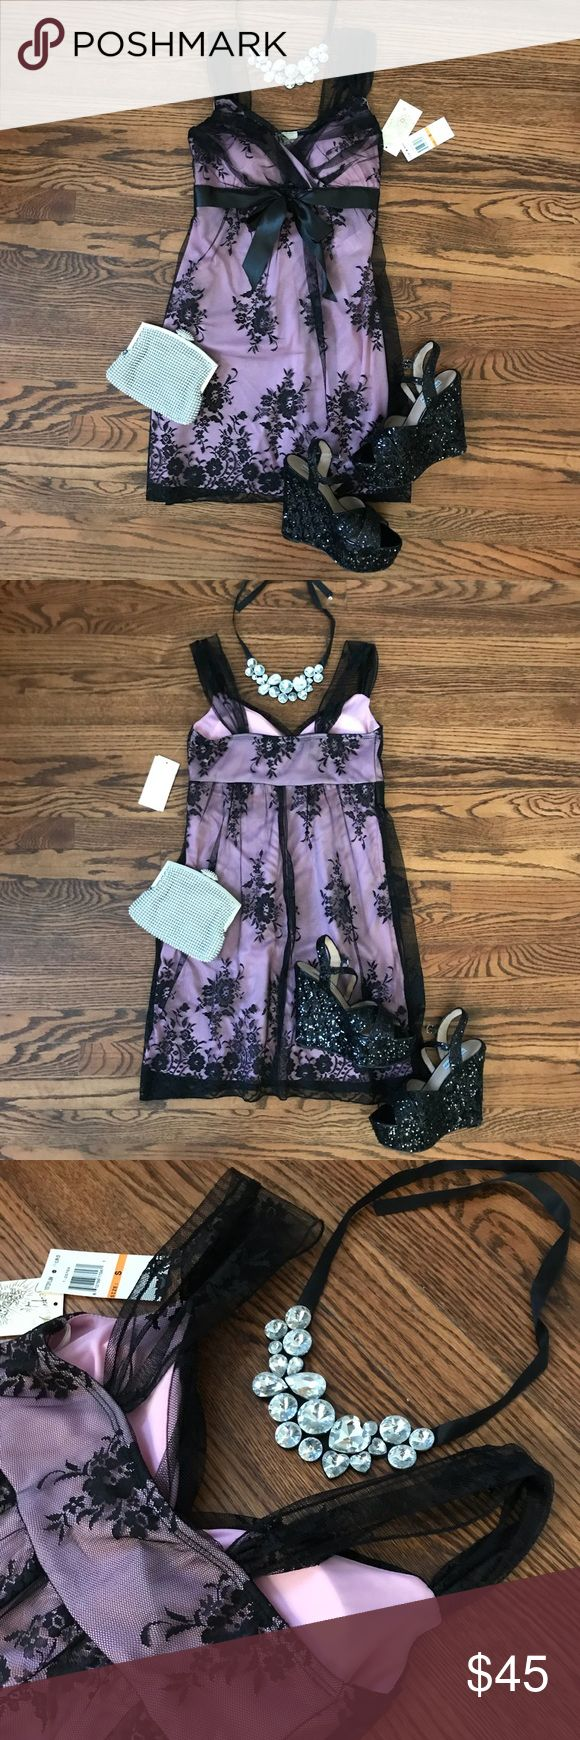 1 HR SALE! NWT Sequin Hearts Lace Dress- sz S NWT pink and black lace dress by Sequin Hearts. Soft pink cloth lining with sheer black lace overlay, lace straps, ribbon bow, and light padding to the bust. Gorgeous dress listed just in time for Valentine's Day! Black sequin Steve Madden wedges, silver clutch, and rhinestone bib necklace are also for sale in my closet- bundle to save! All offers welcome! Sequin Hearts Dresses Mini